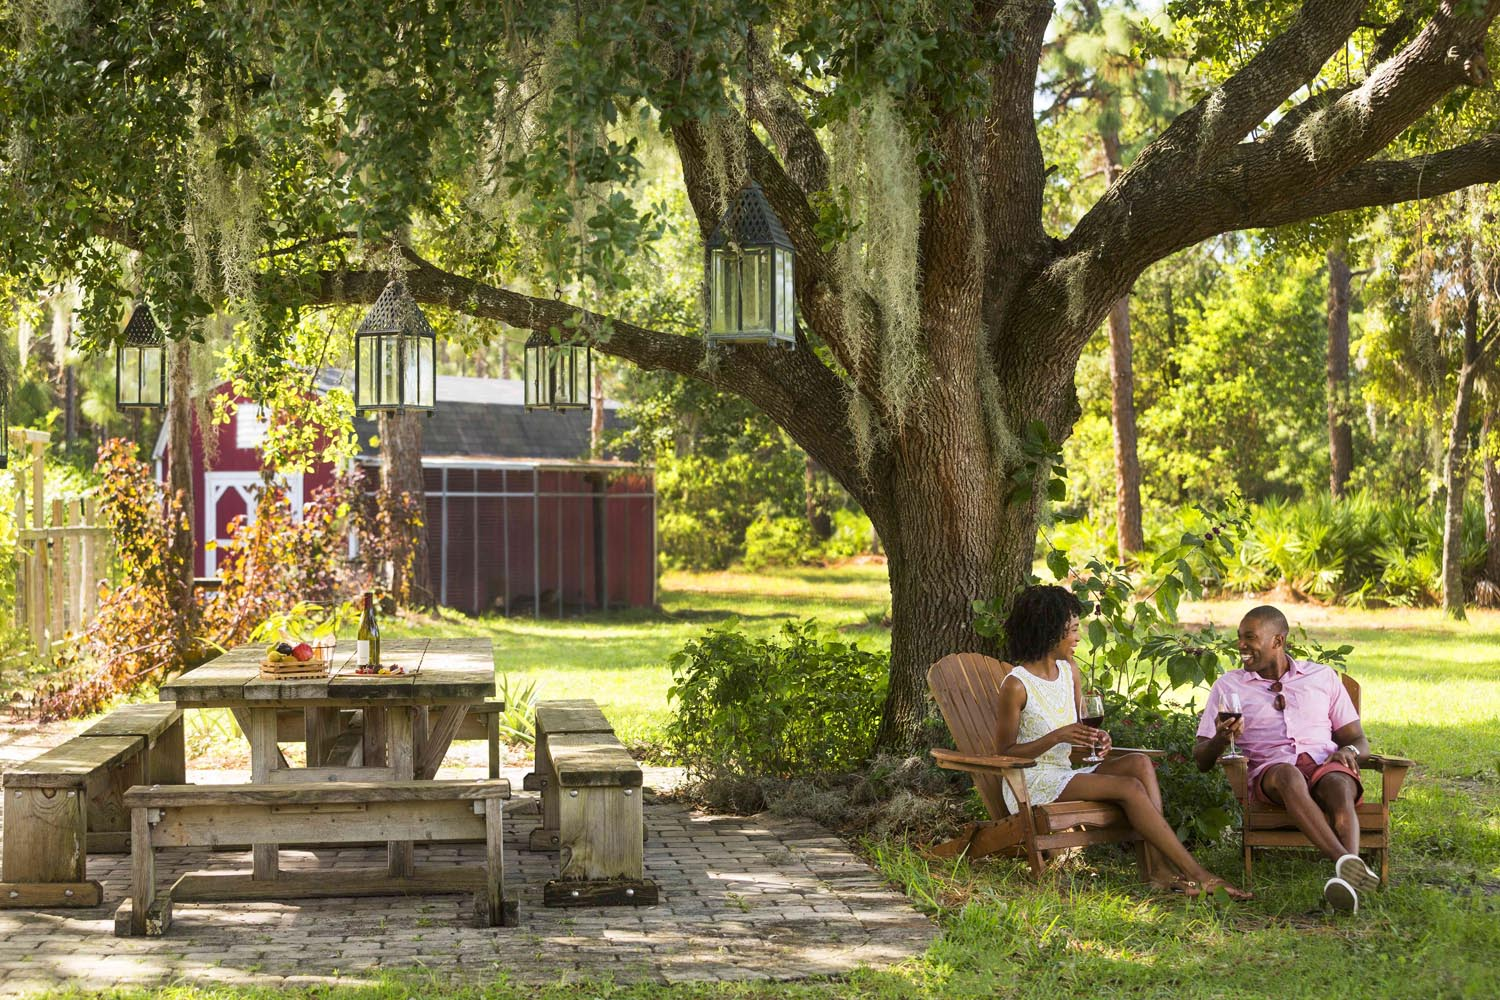 Grande Lakes Orlando'sWhisper Creek Fables series of farm-to-table experiences includes aFarm to Fare option forcouples, featuring a romantic dinner for two.